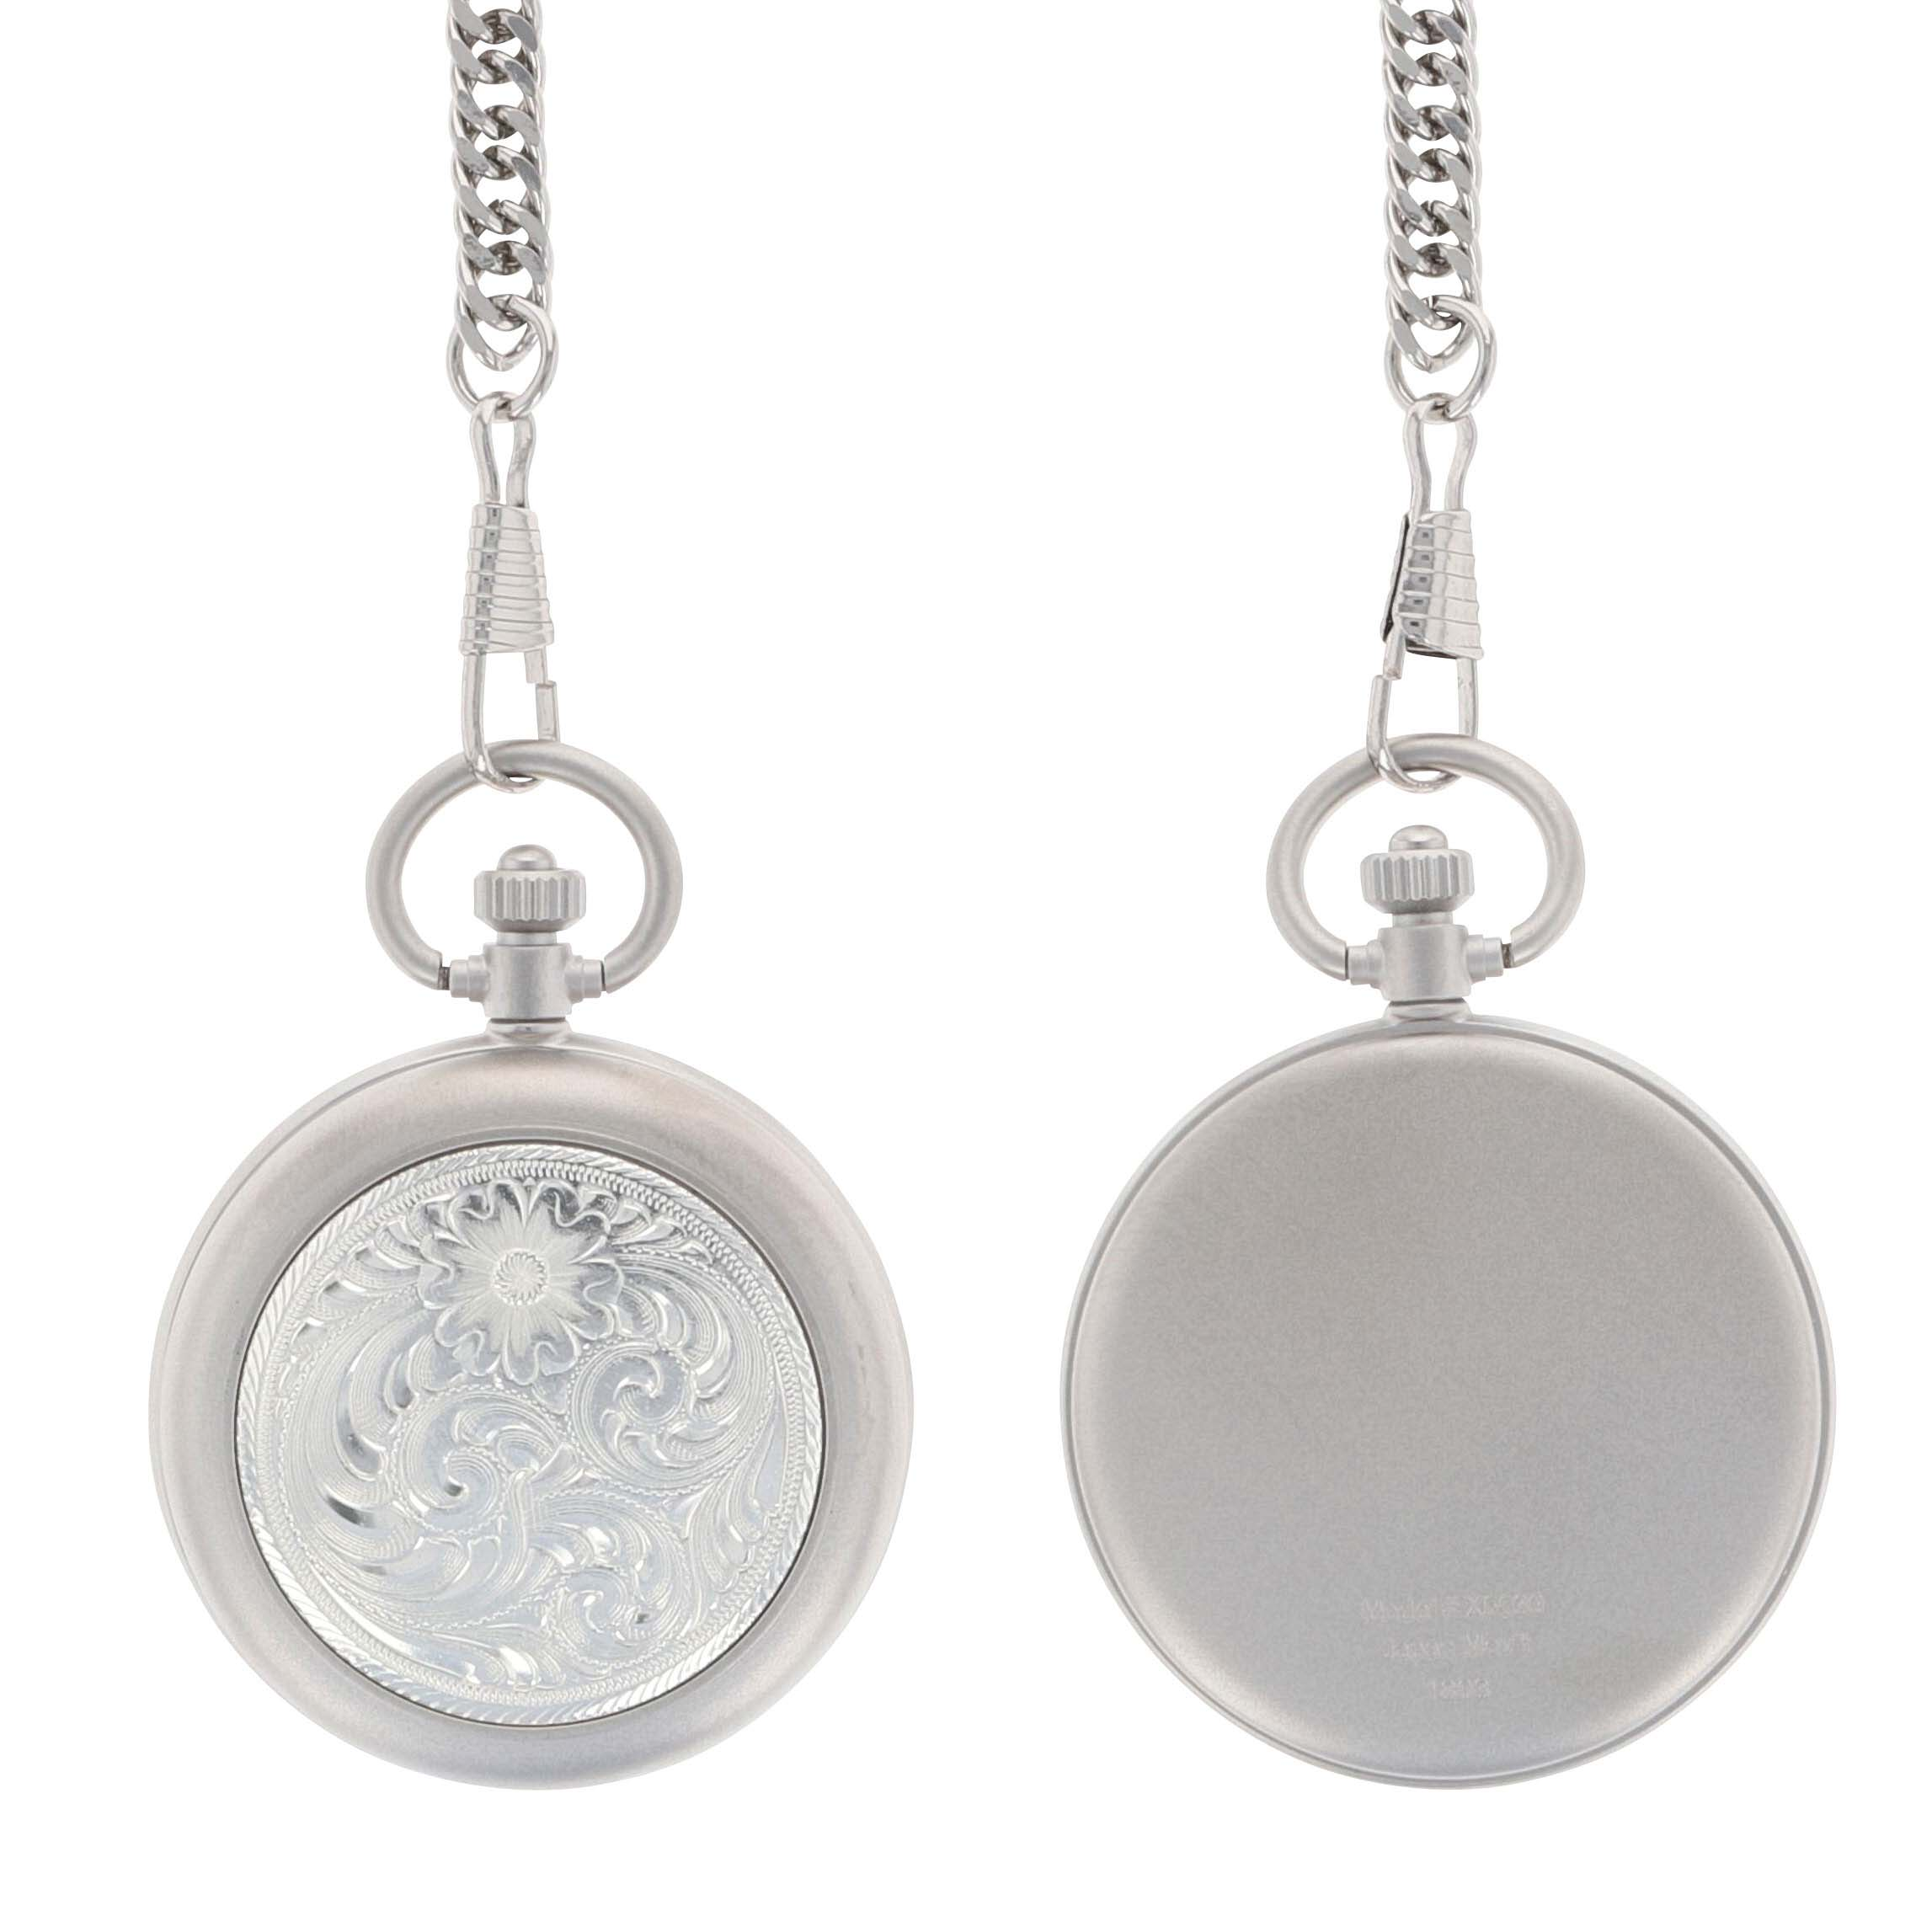 Engraved Silver, Small Silver Inlay, Pocket Watch